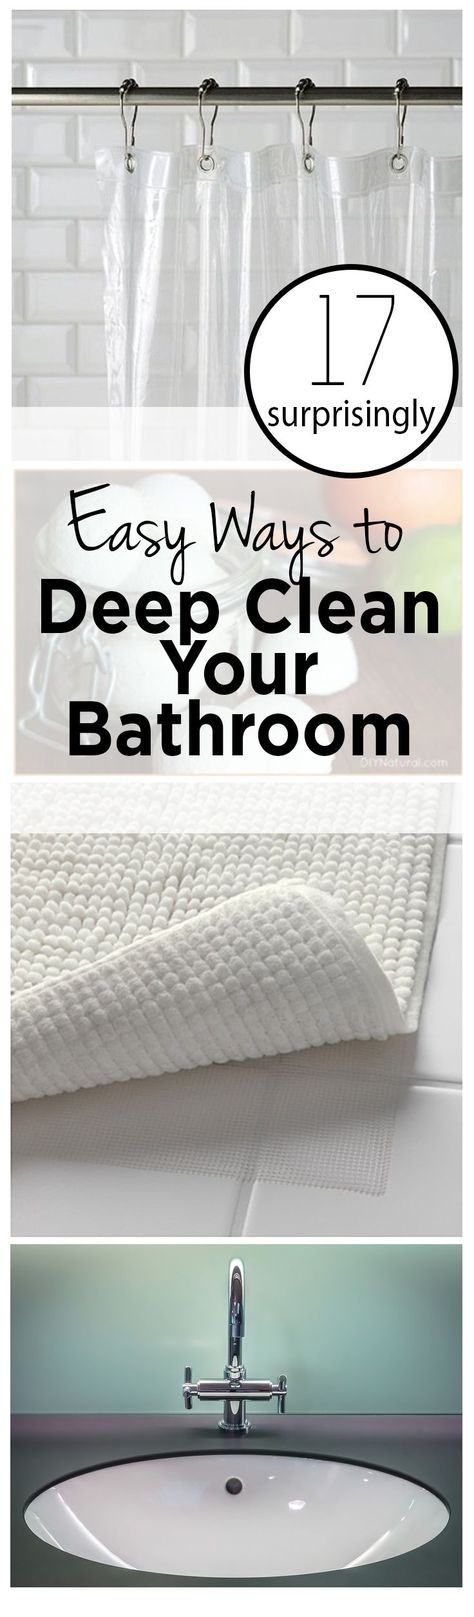 17 Surprisingly Easy Ways to Deep Clean Your Bathroom